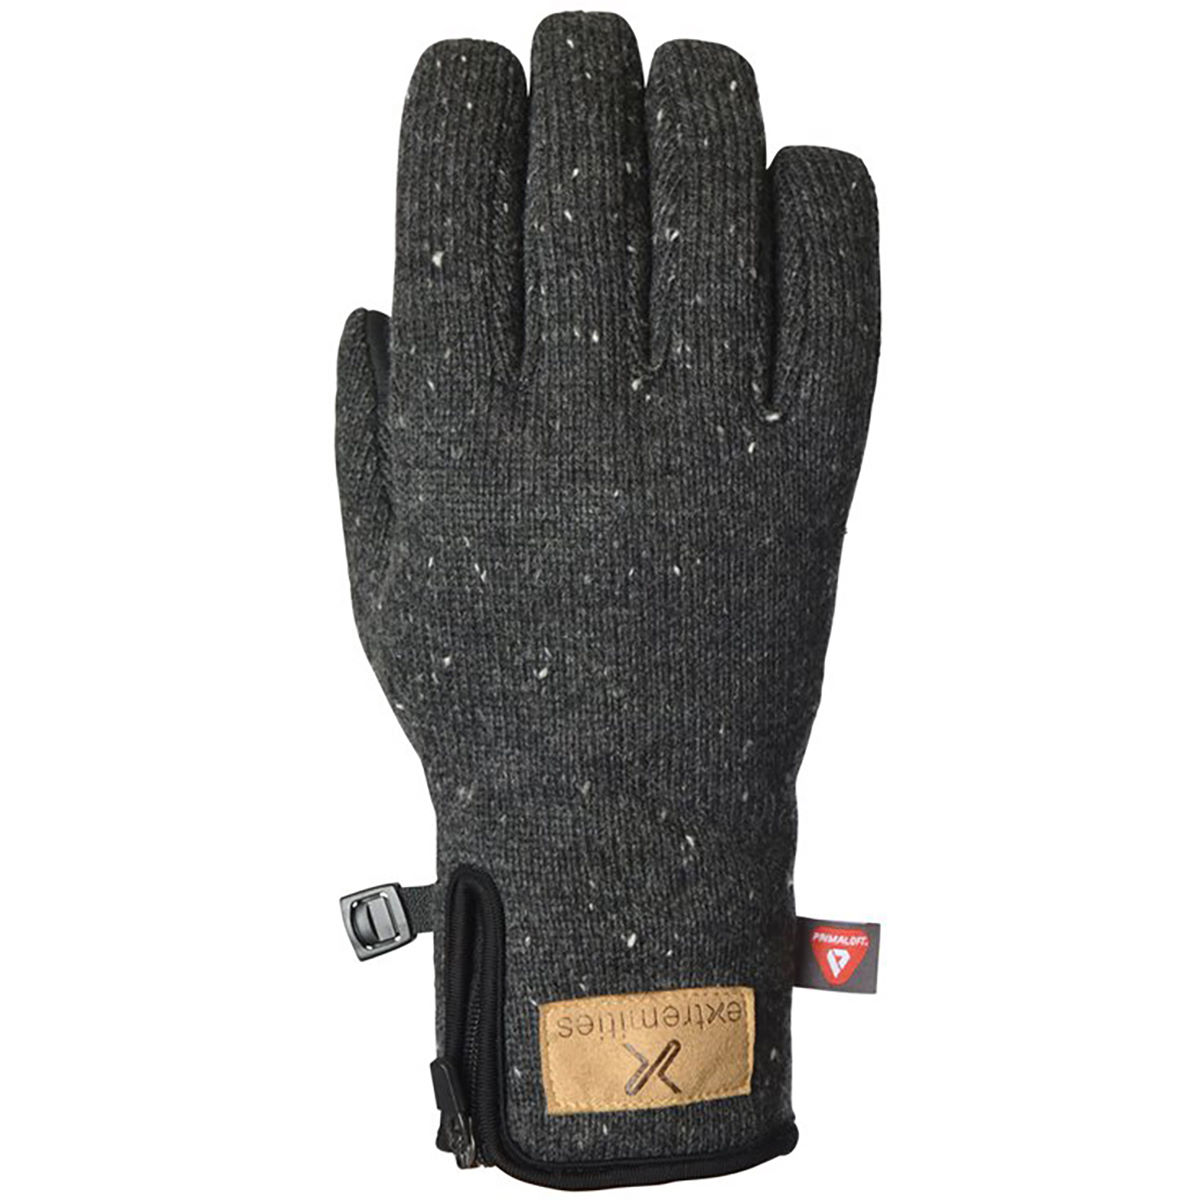 Extremities Furnace Pro Glove - Guantes